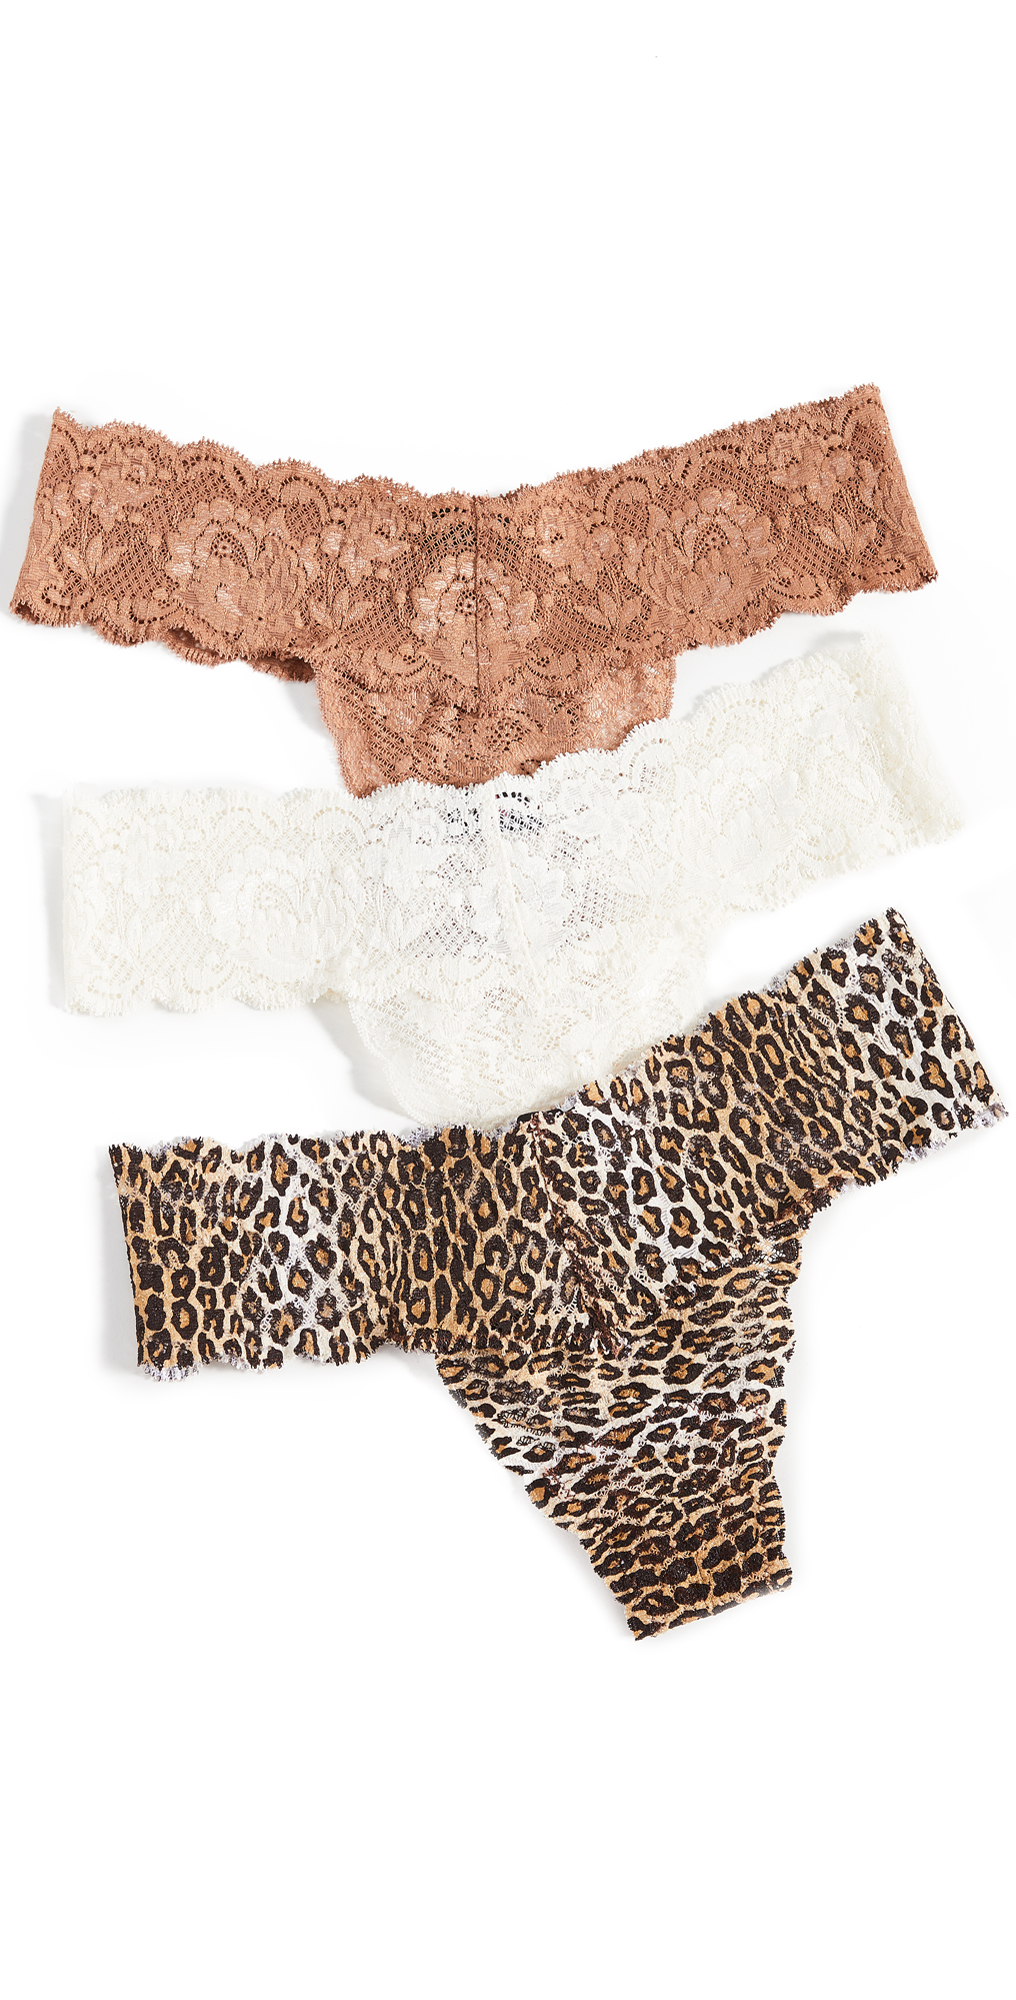 Cosabella Cutie 3 Pack Low Rise Thong